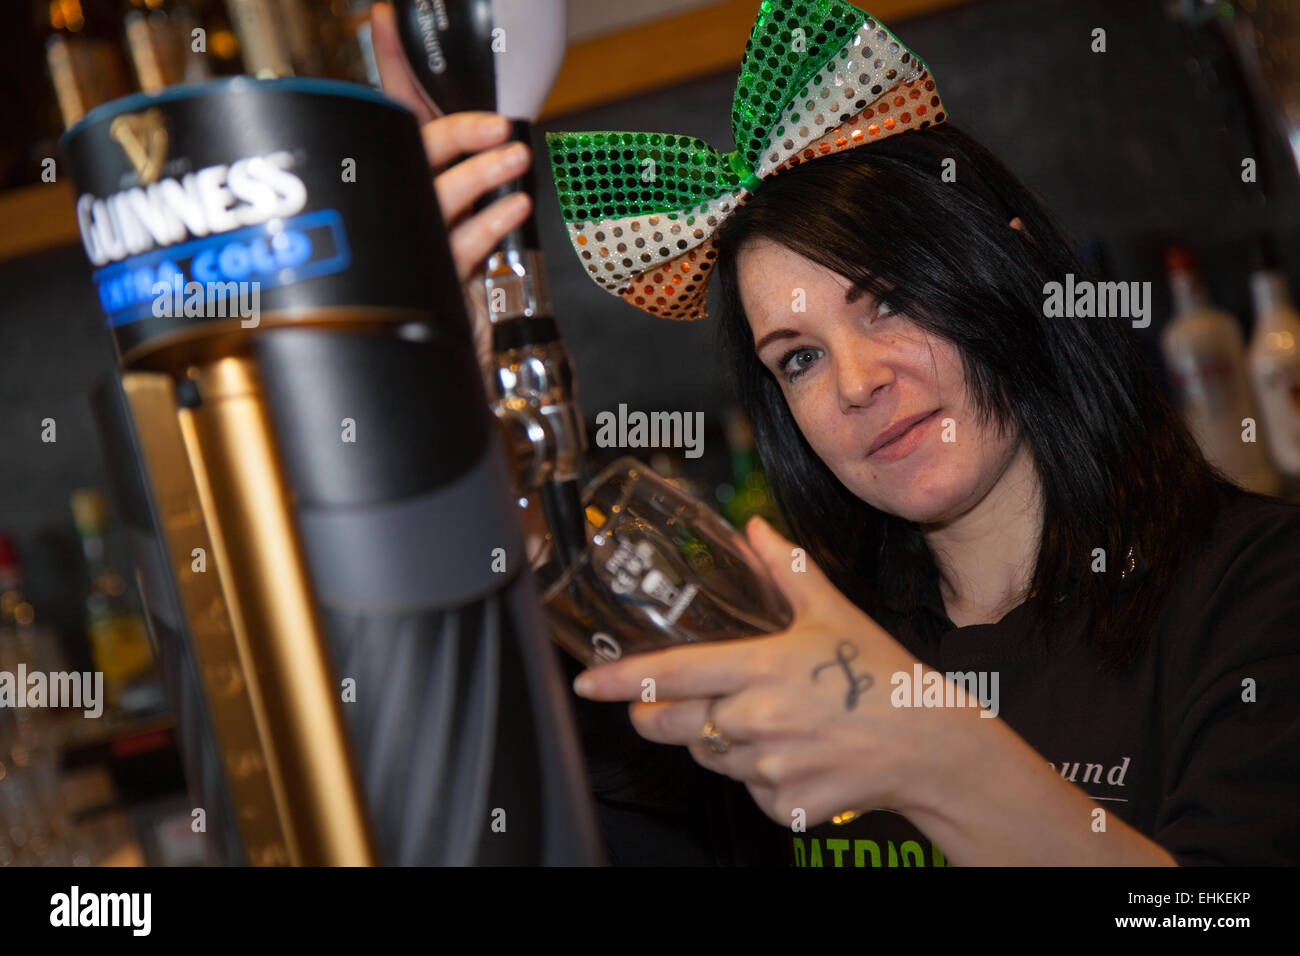 Manchester, UK 15th March, 2015.  Lisa Purcell at the St Patrick's weekend Irish Festival.  Thousands of people - Stock Image